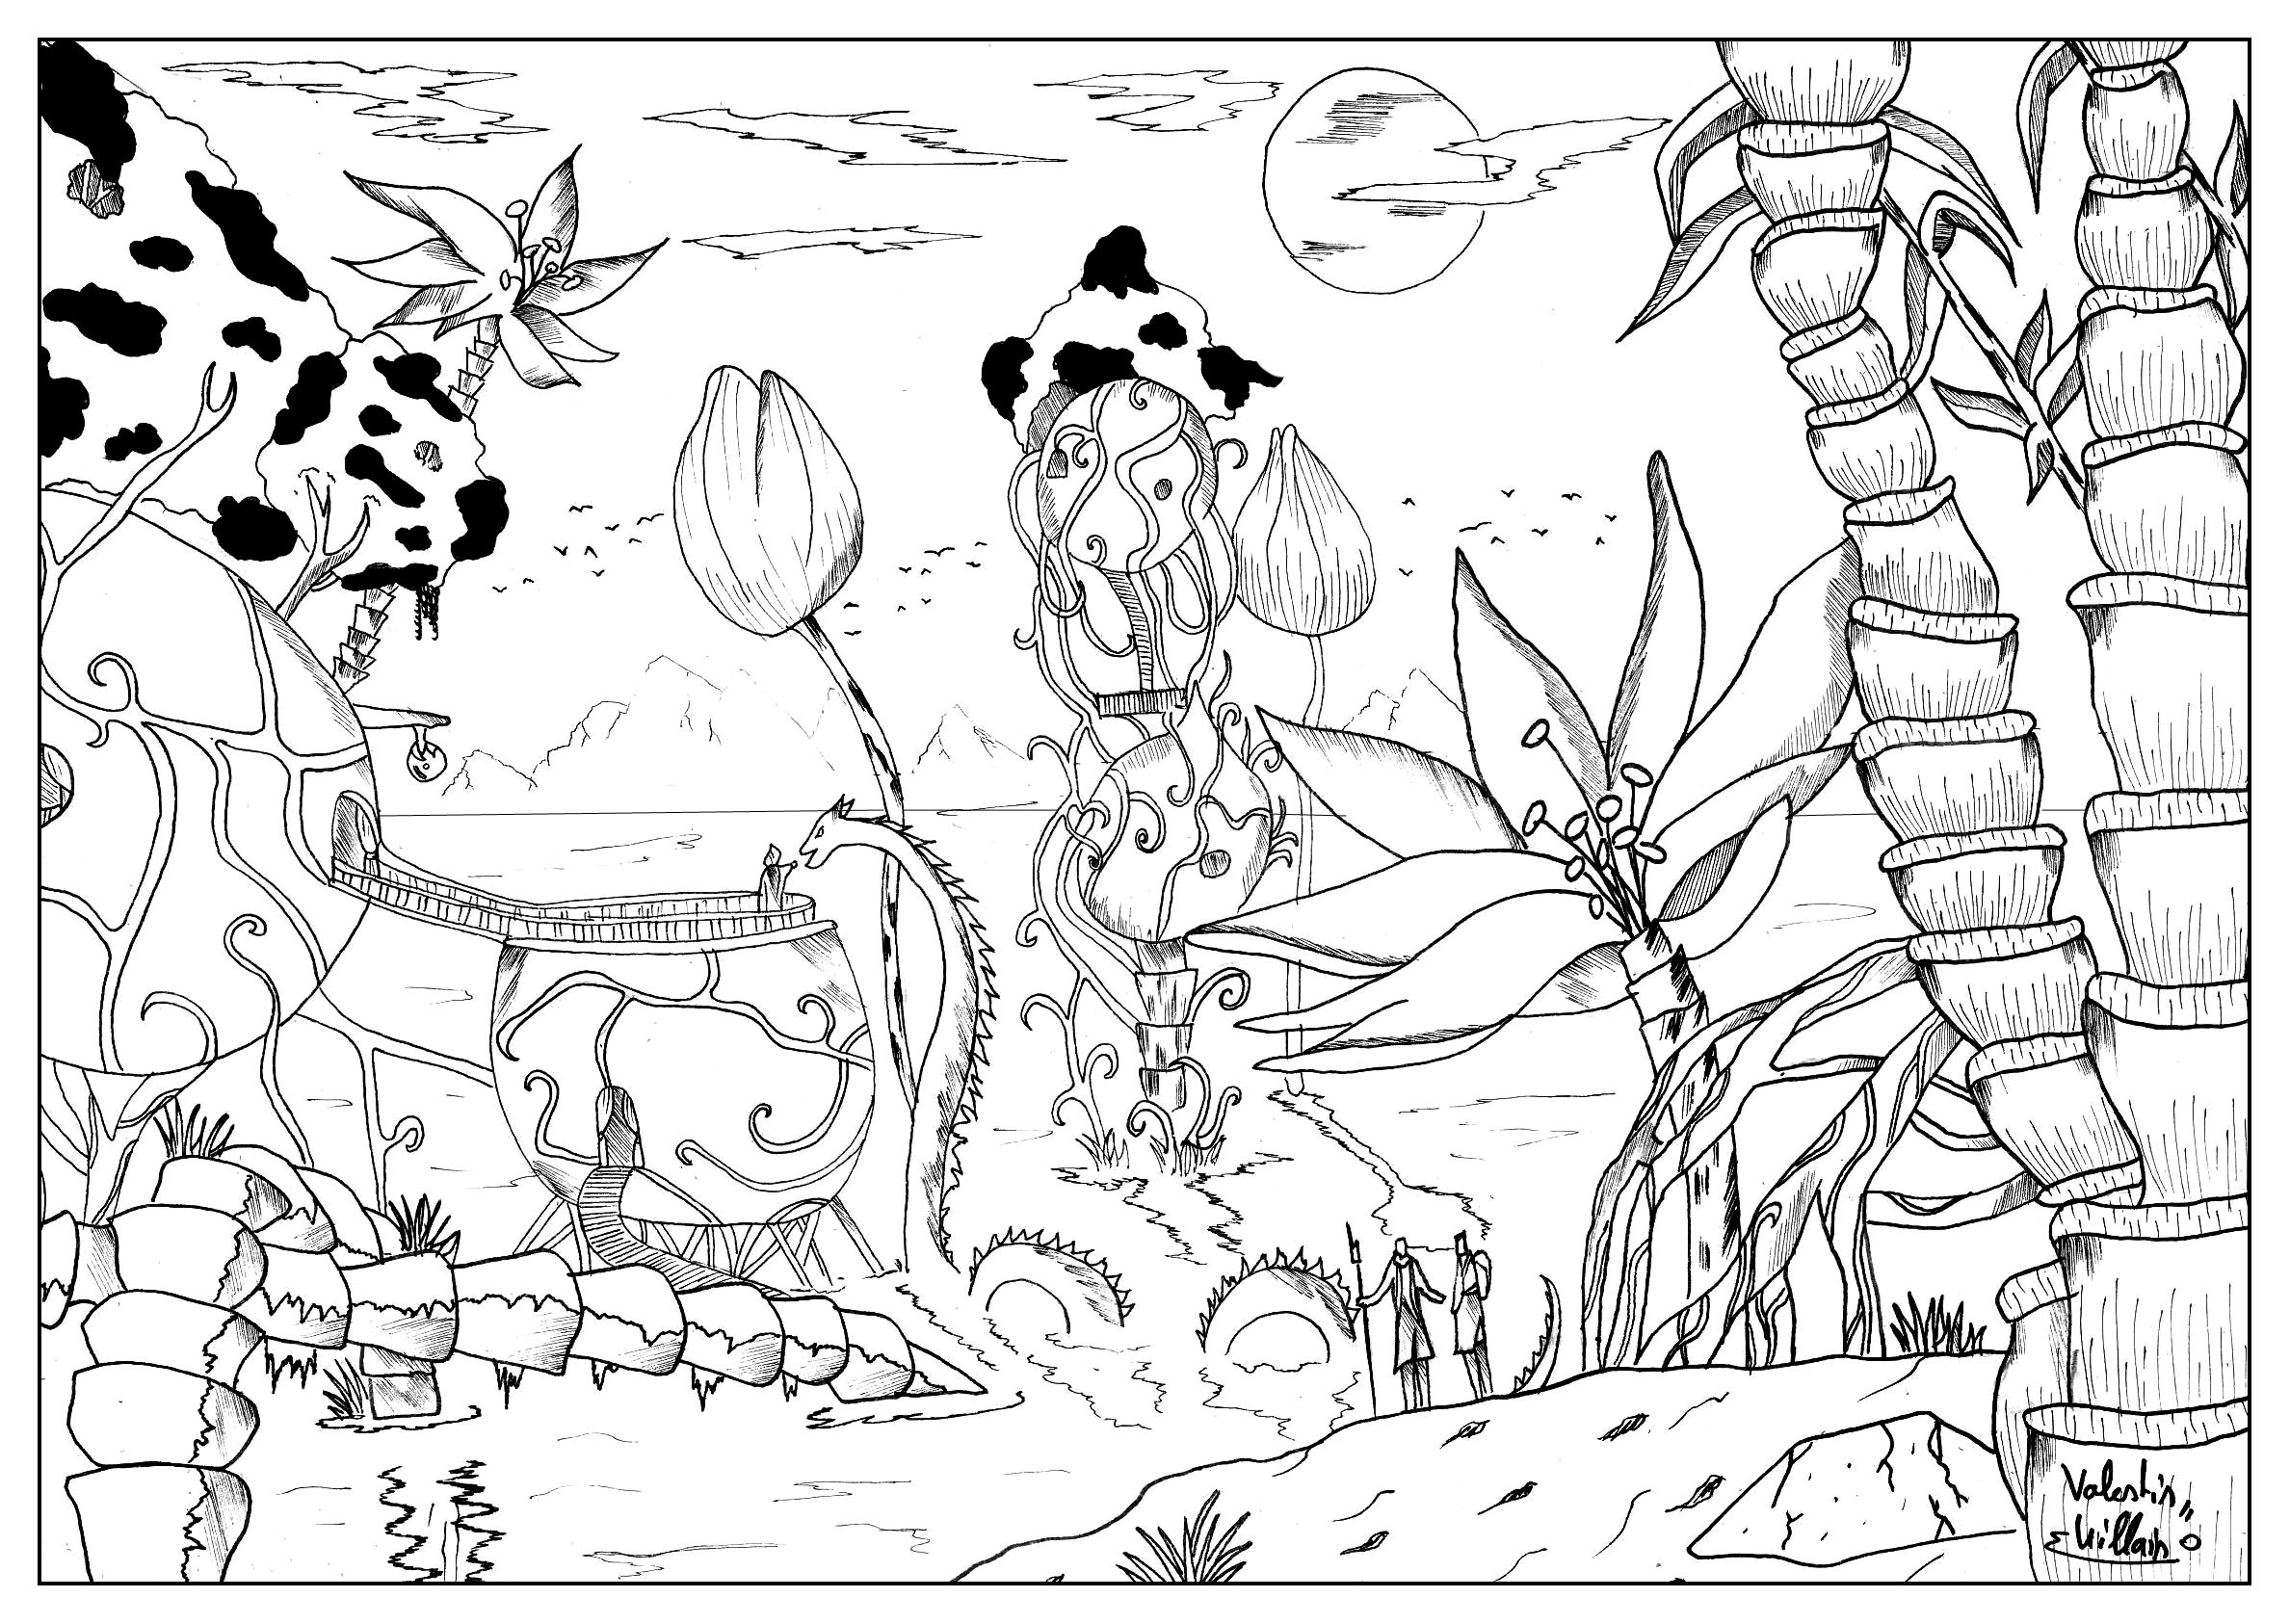 coloring page of an imaginary aquatic village with a strange creature and a mysterious character